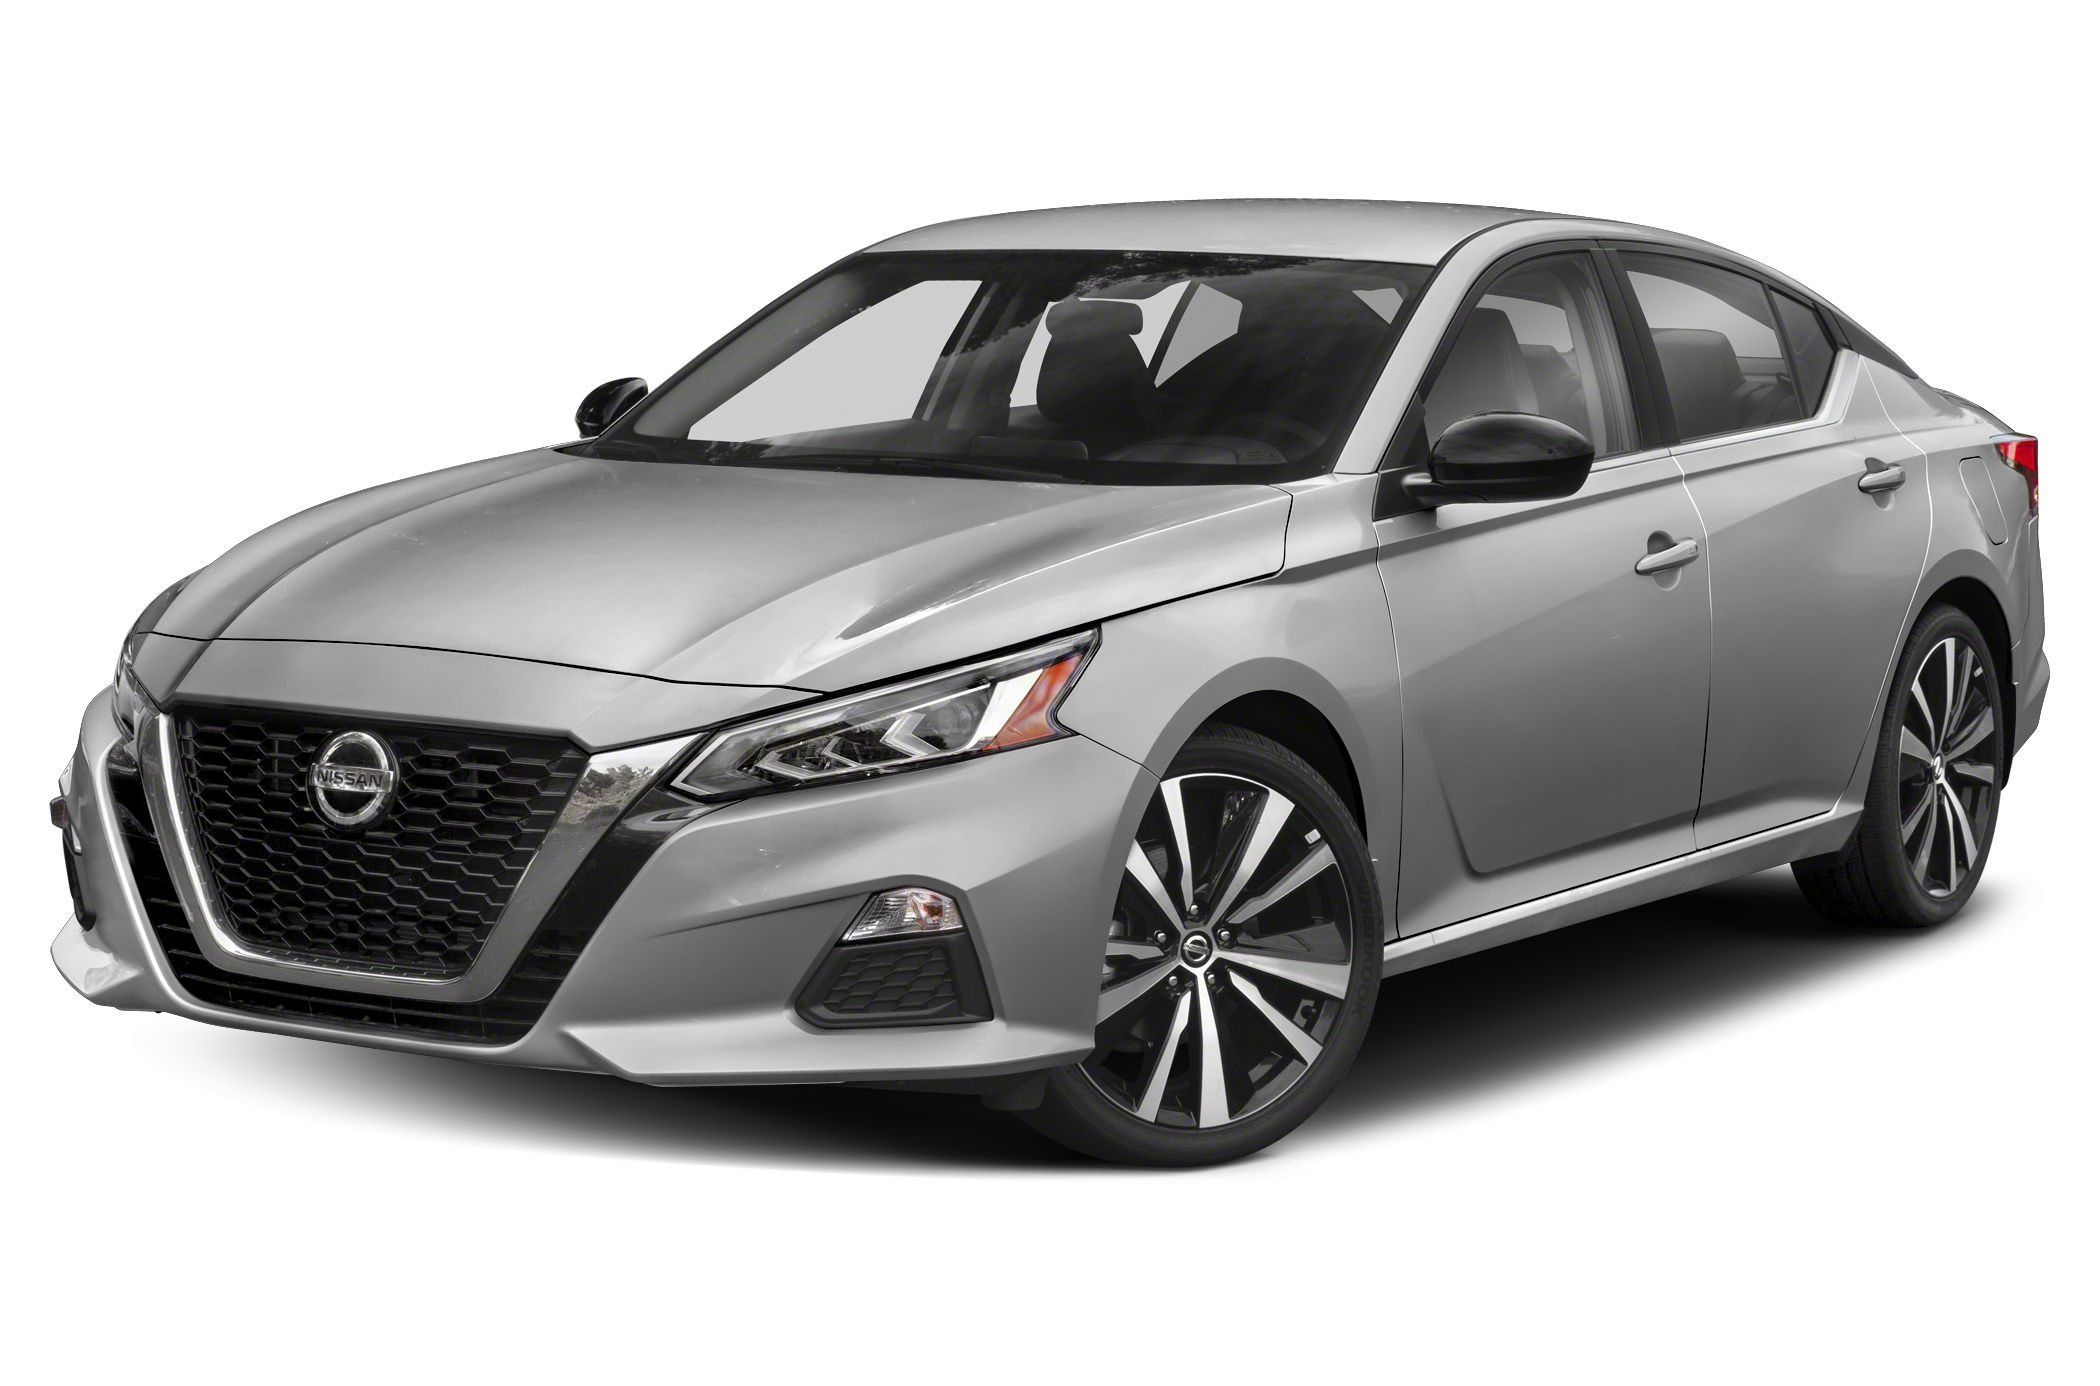 2020 Nissan Altima Coupe Photos In 2020 Nissan Altima Nissan Nissan Altima Coupe